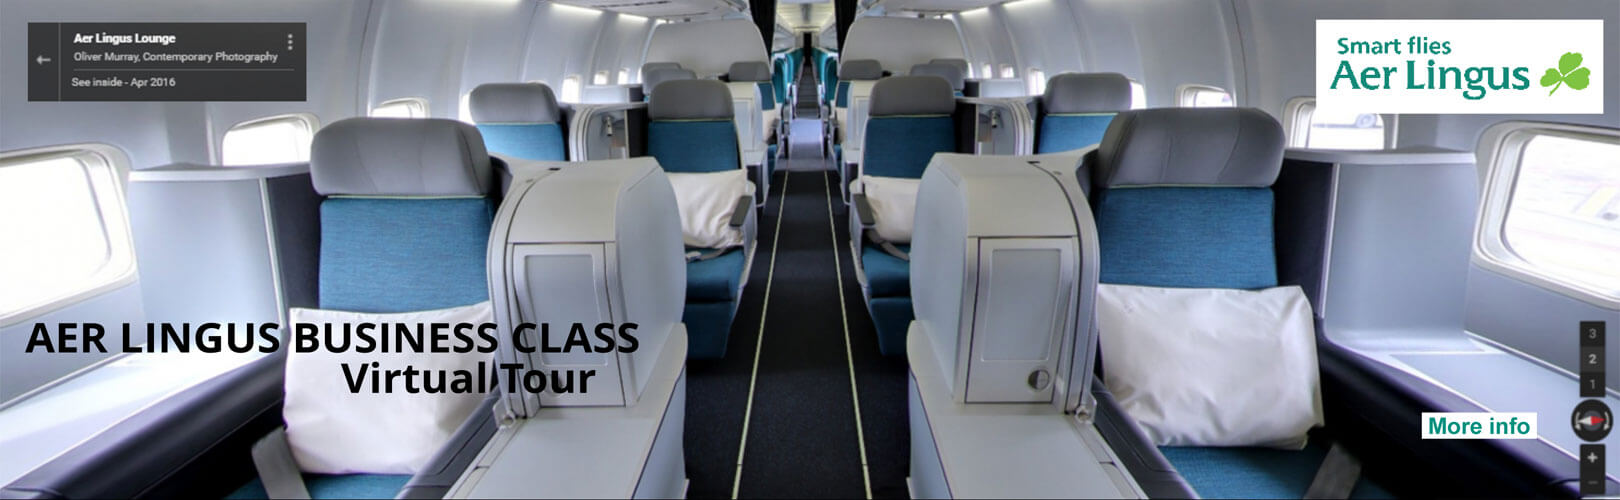 Aer-Lingus-Business-Class-Seating-757-Google-Street-View-Virtual-Tour-V1-3-1620x500-WEB